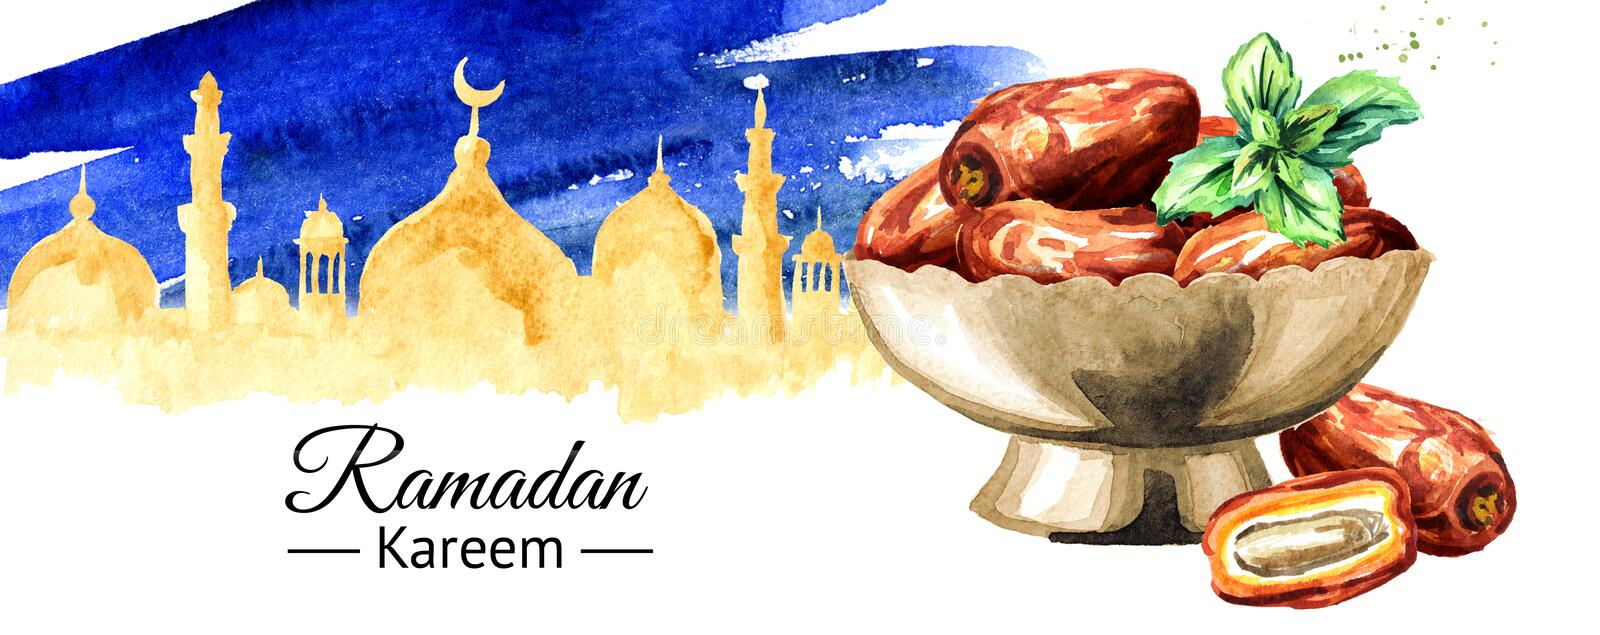 Ramadan Kareem Iftar party celebration background. Dried Date fruits in the bowl. Watercolor hand drawn illustration royalty free illustration